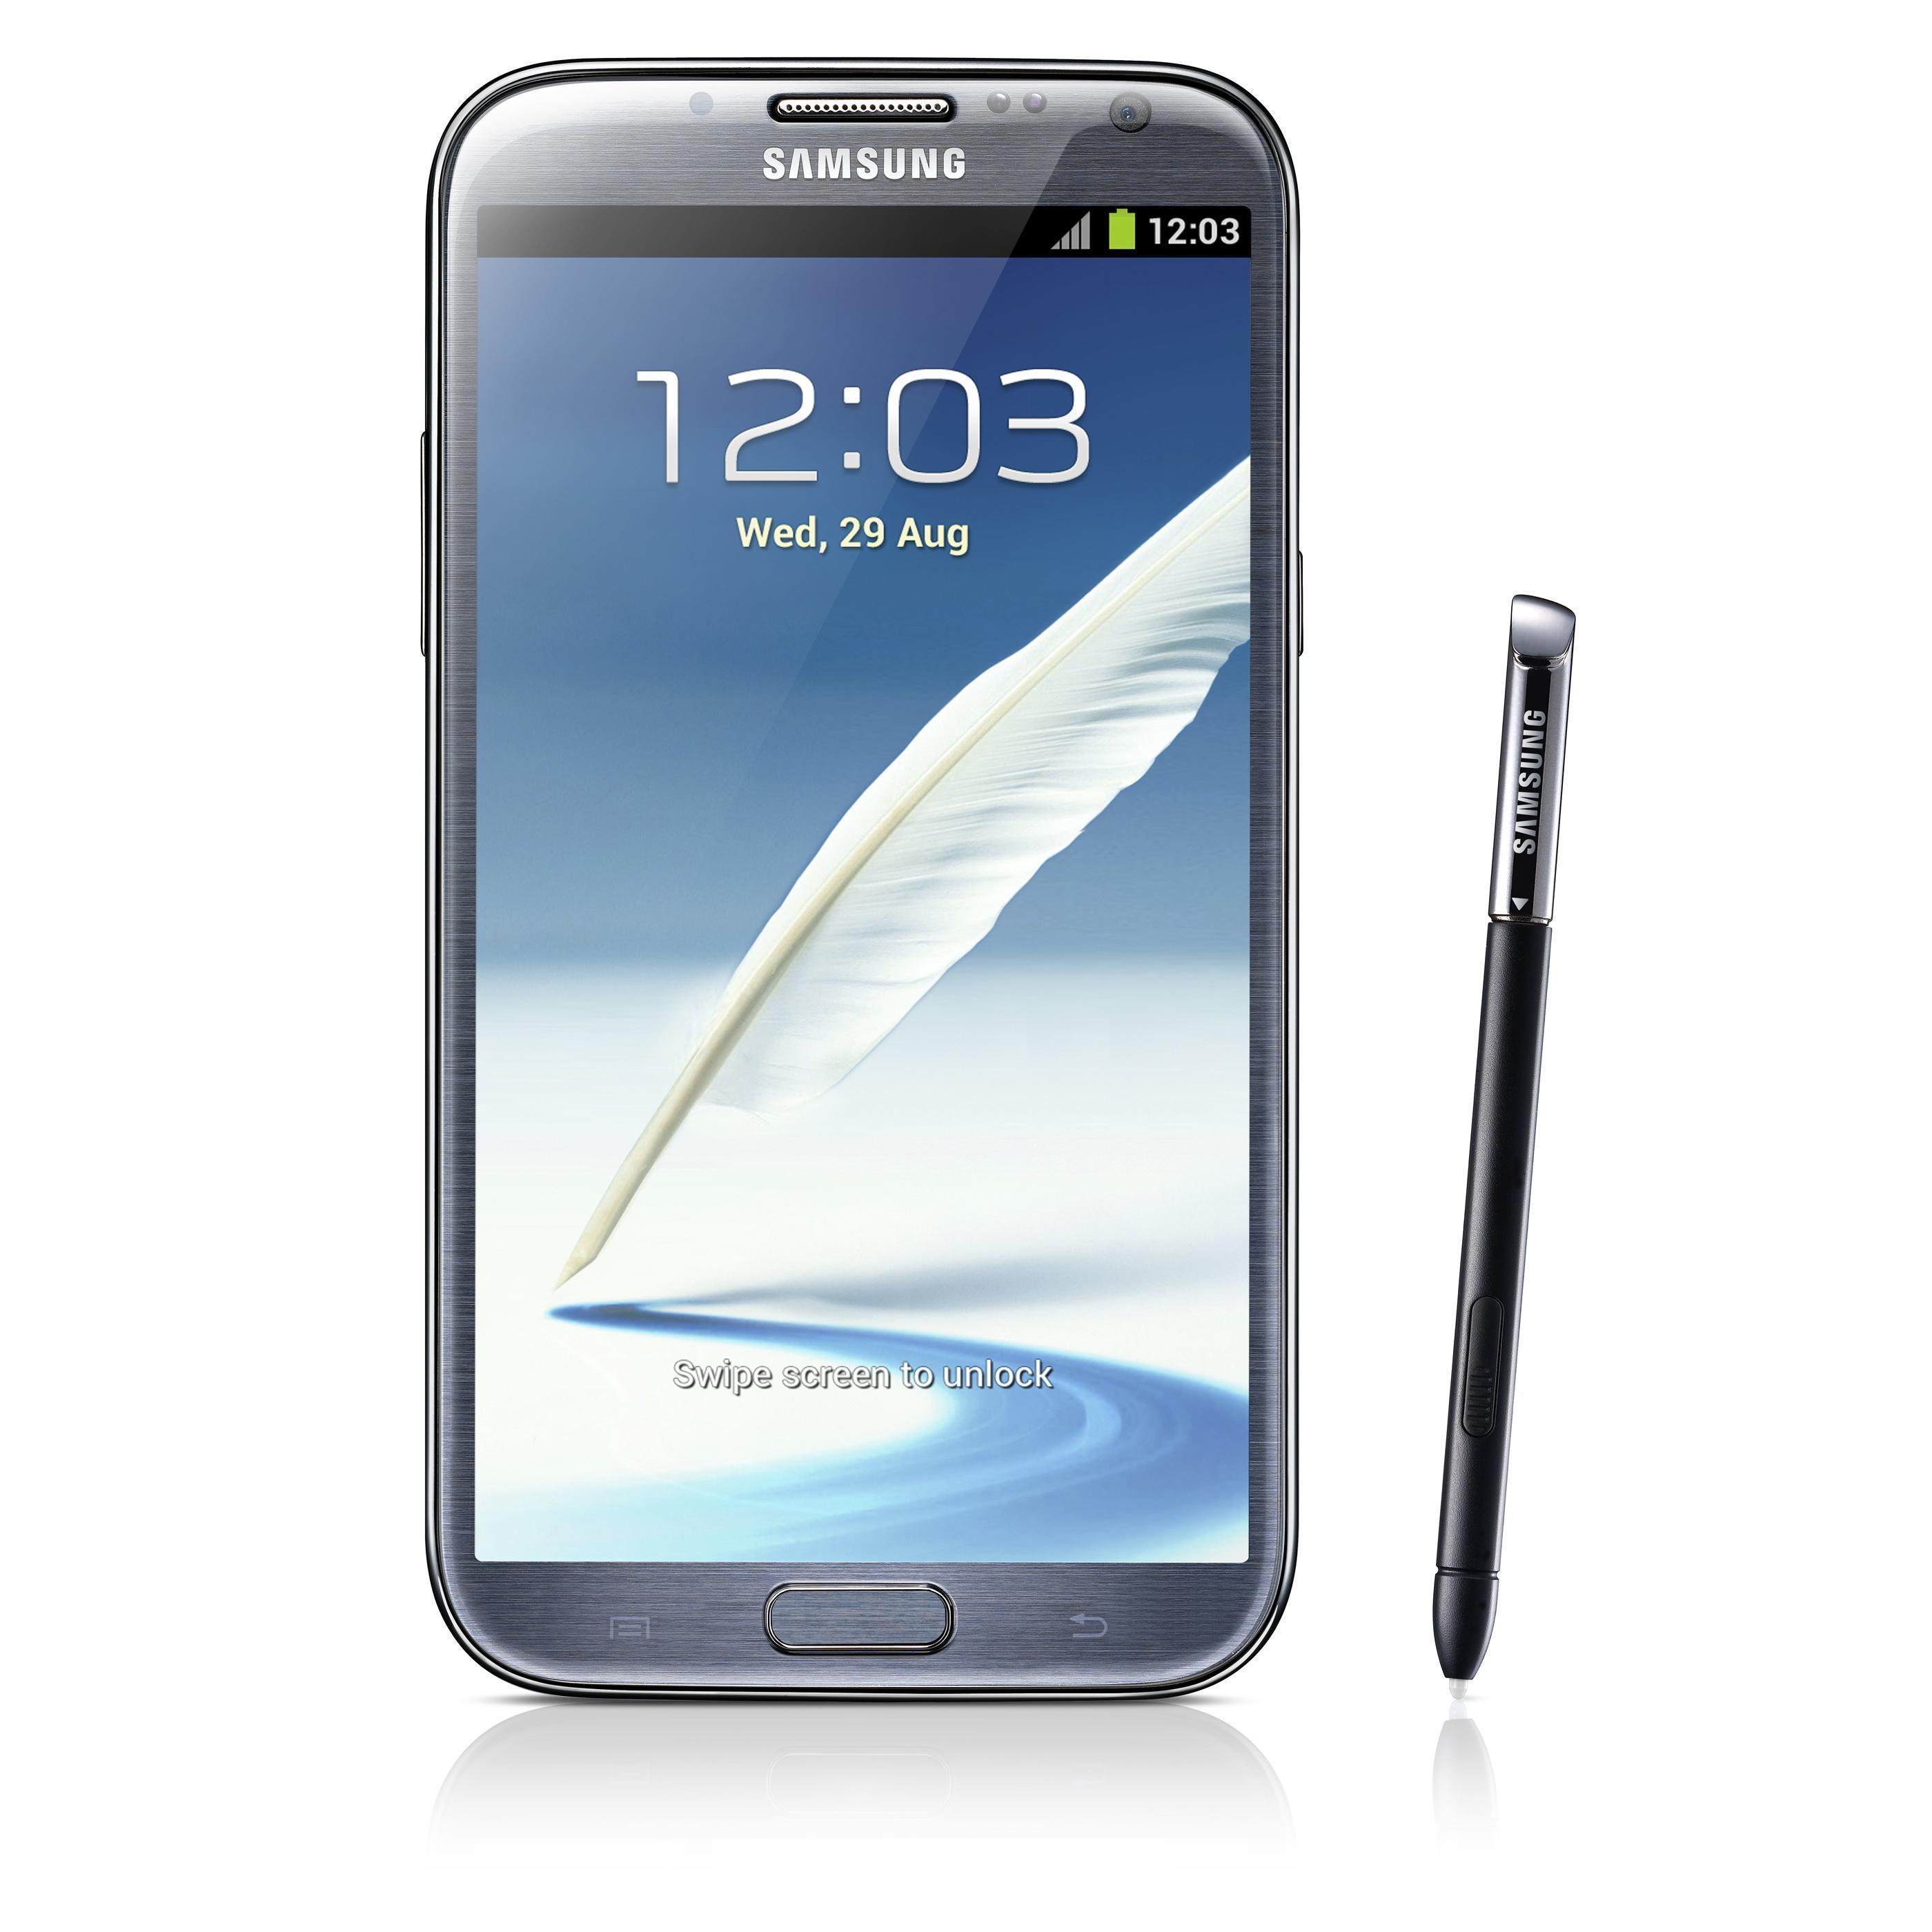 Samsung Galaxy Note 2 16 Go N7105 4G - Gris - Bouygues